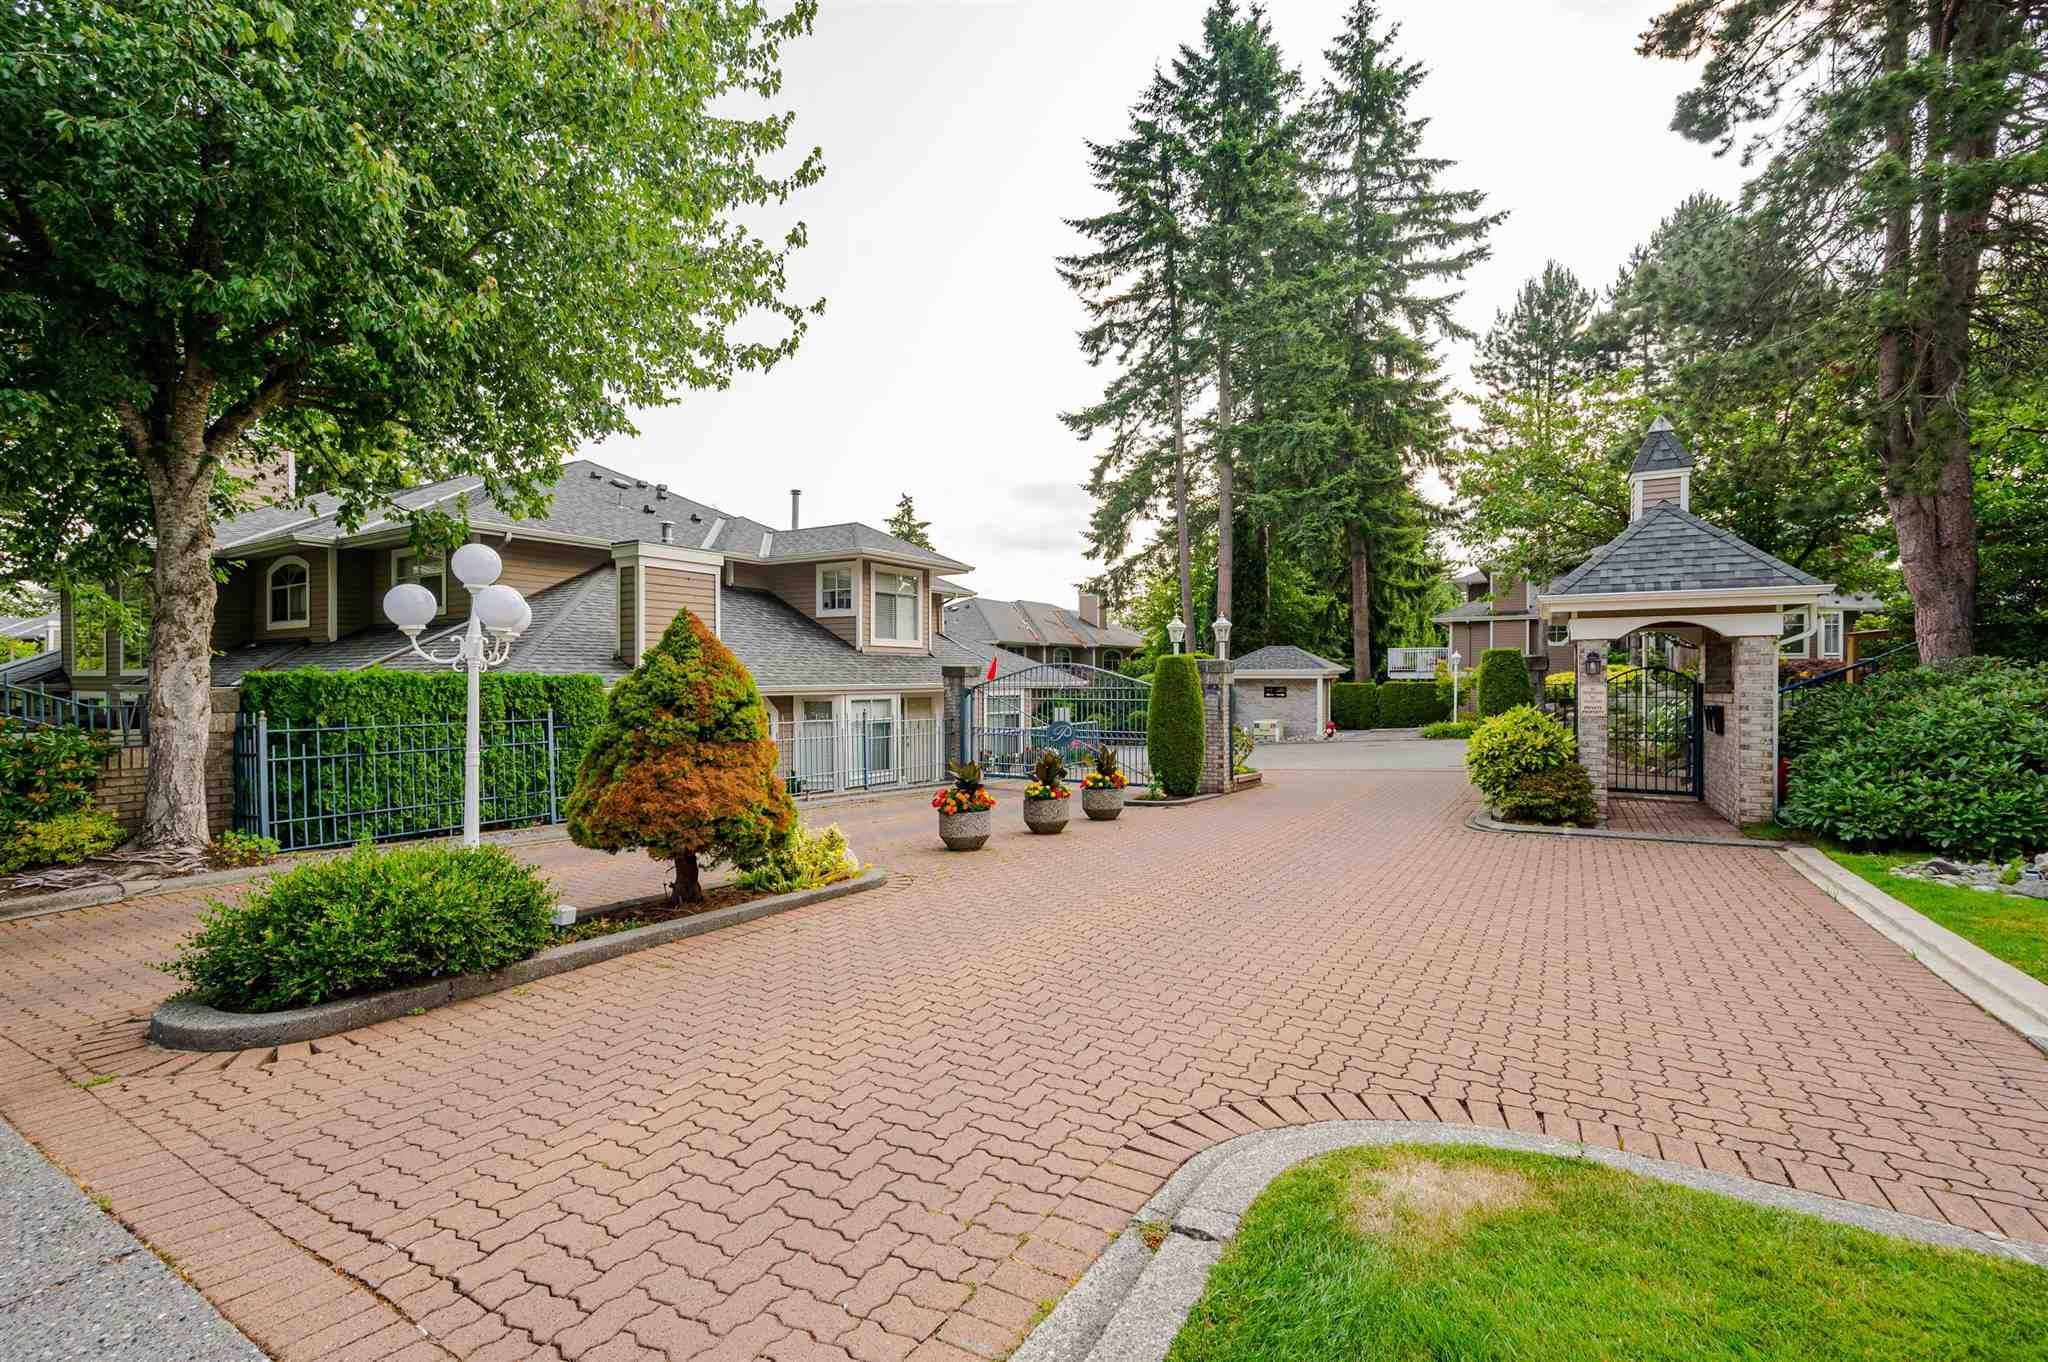 Main Photo: 92 2500 152 STREET in Surrey: Sunnyside Park Surrey Townhouse for sale (South Surrey White Rock)  : MLS®# R2598326